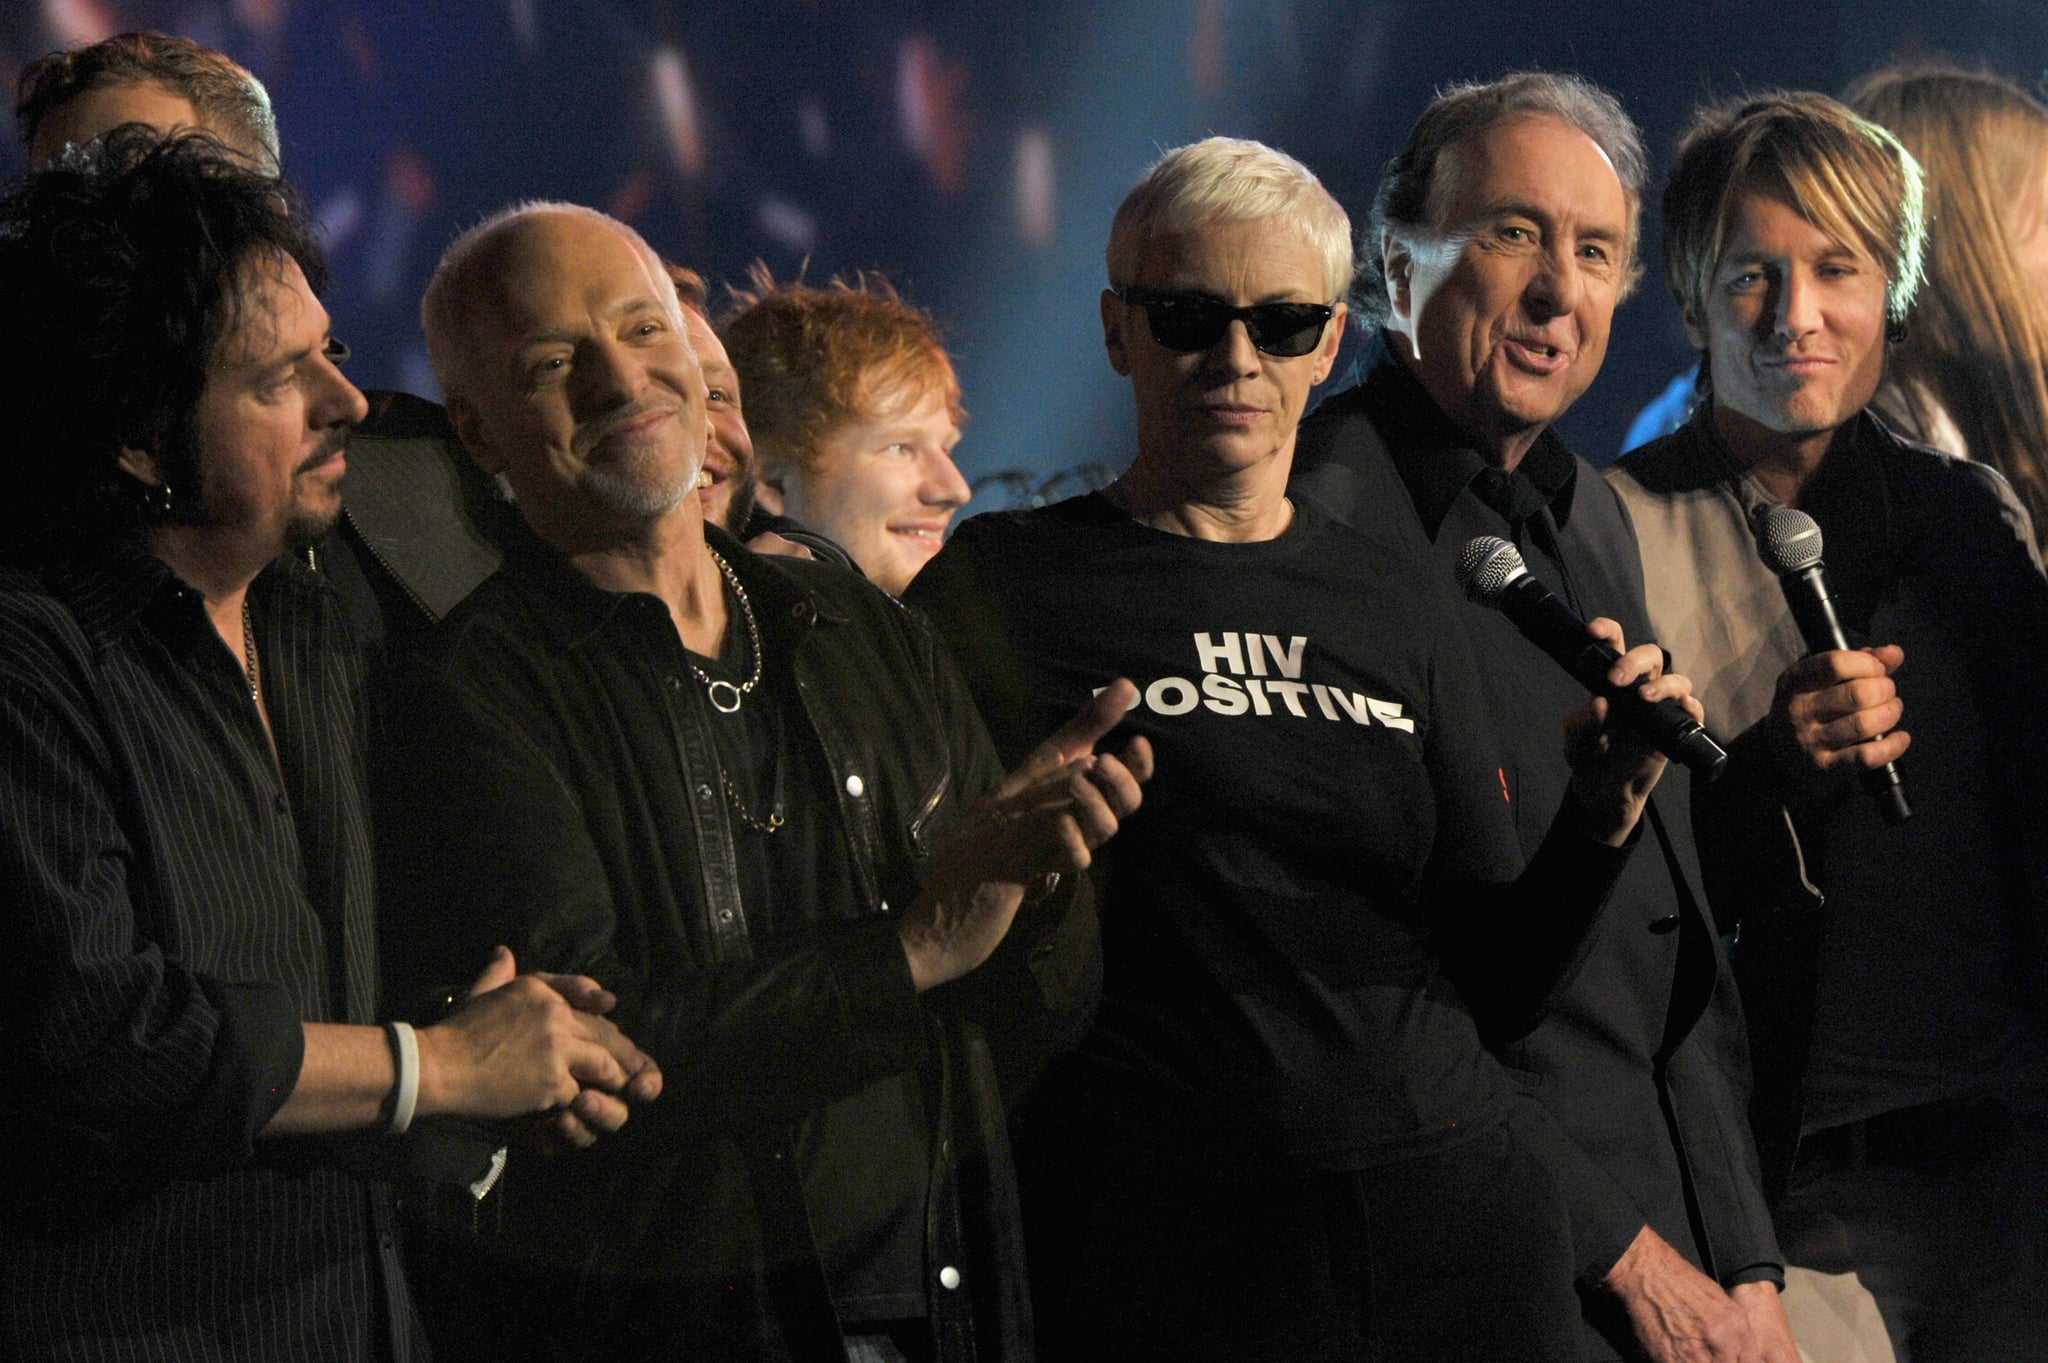 The Grammys Have Nothing on This Star-Studded Beatles Concert